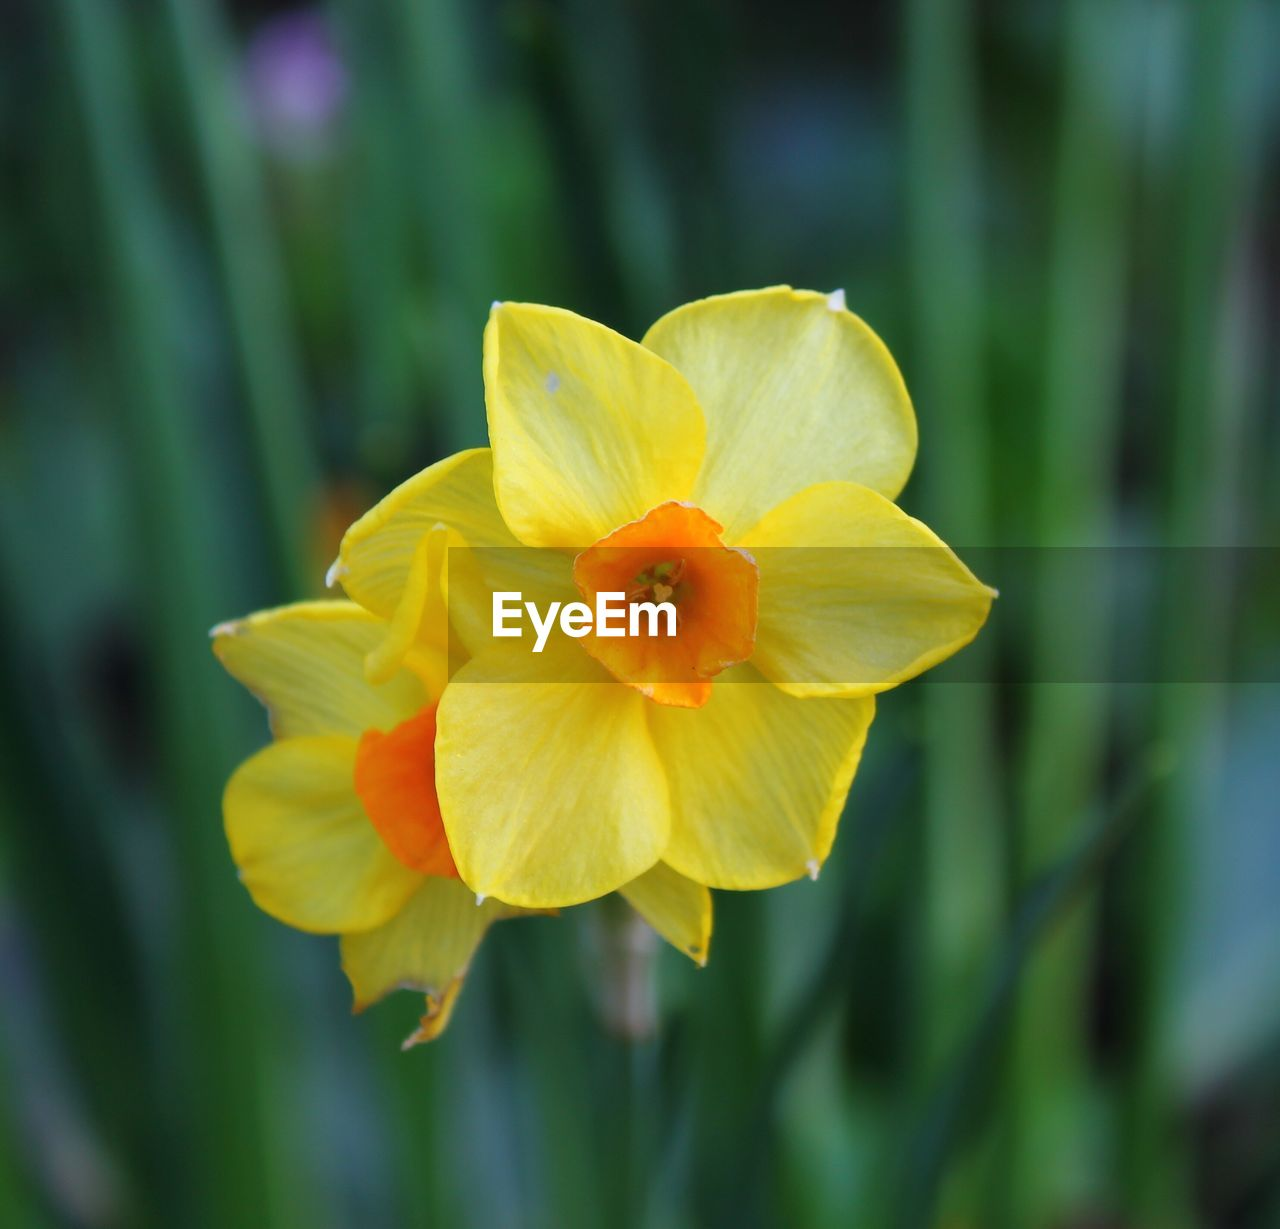 flower, petal, freshness, fragility, nature, growth, beauty in nature, flower head, focus on foreground, plant, yellow, close-up, blooming, no people, day, outdoors, green color